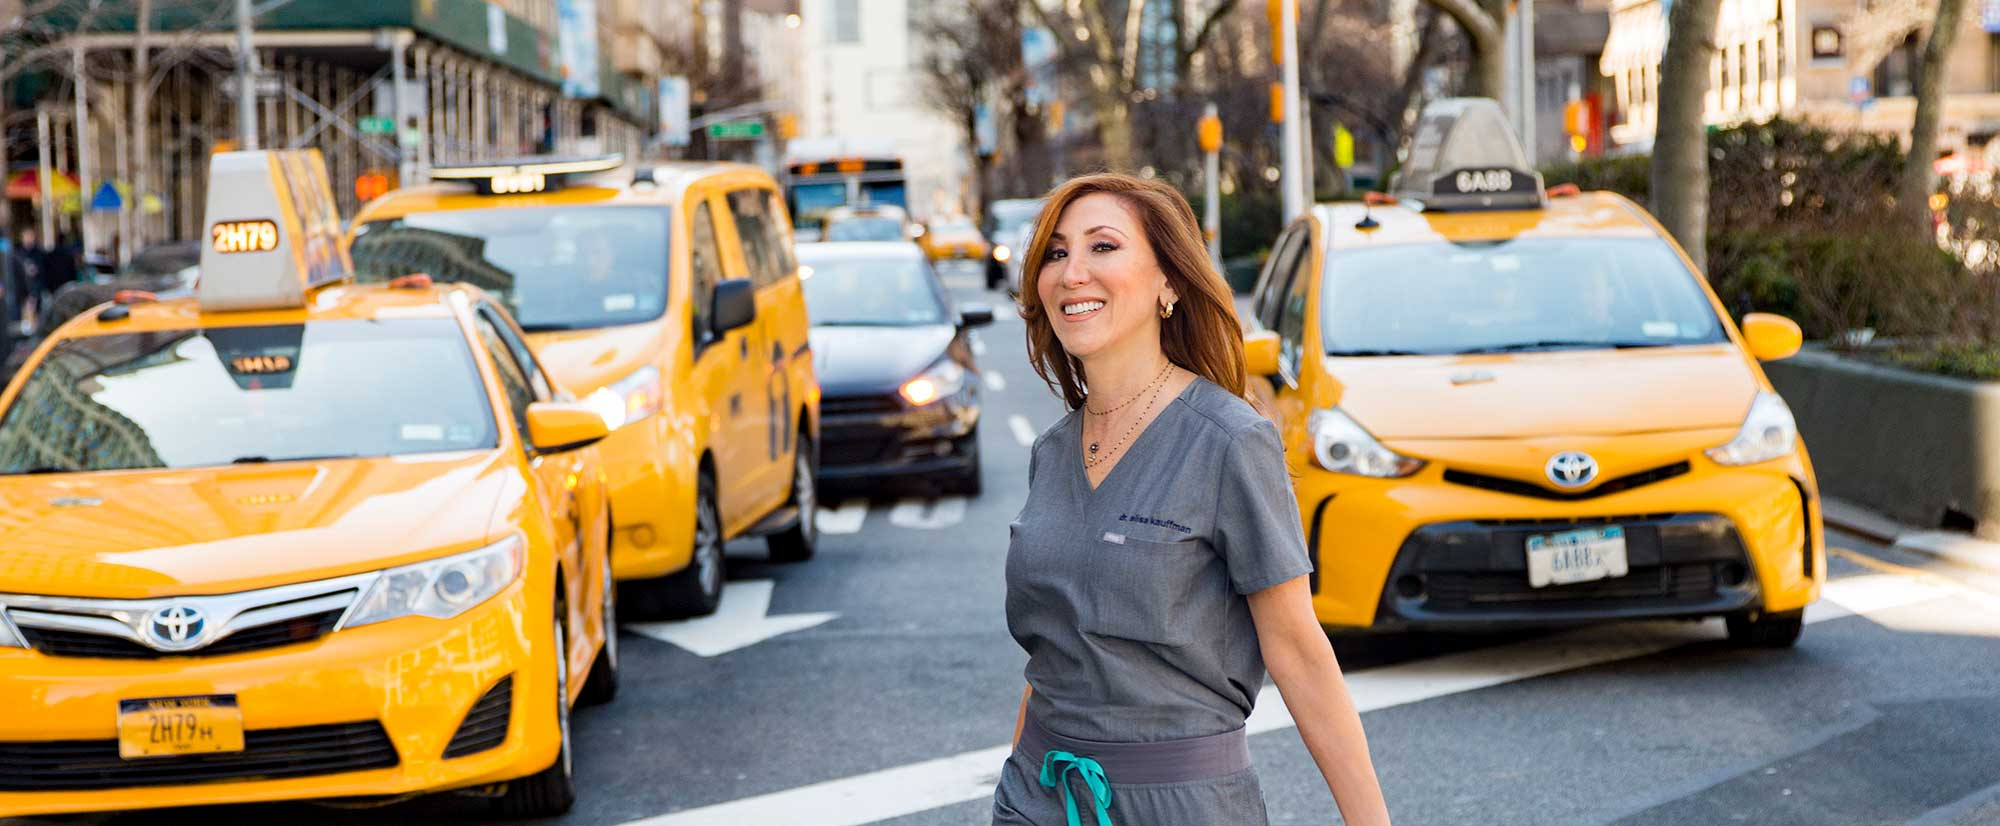 Dr. Alisa Kauffman, geriatric house call dentist crossing the street in New York City.